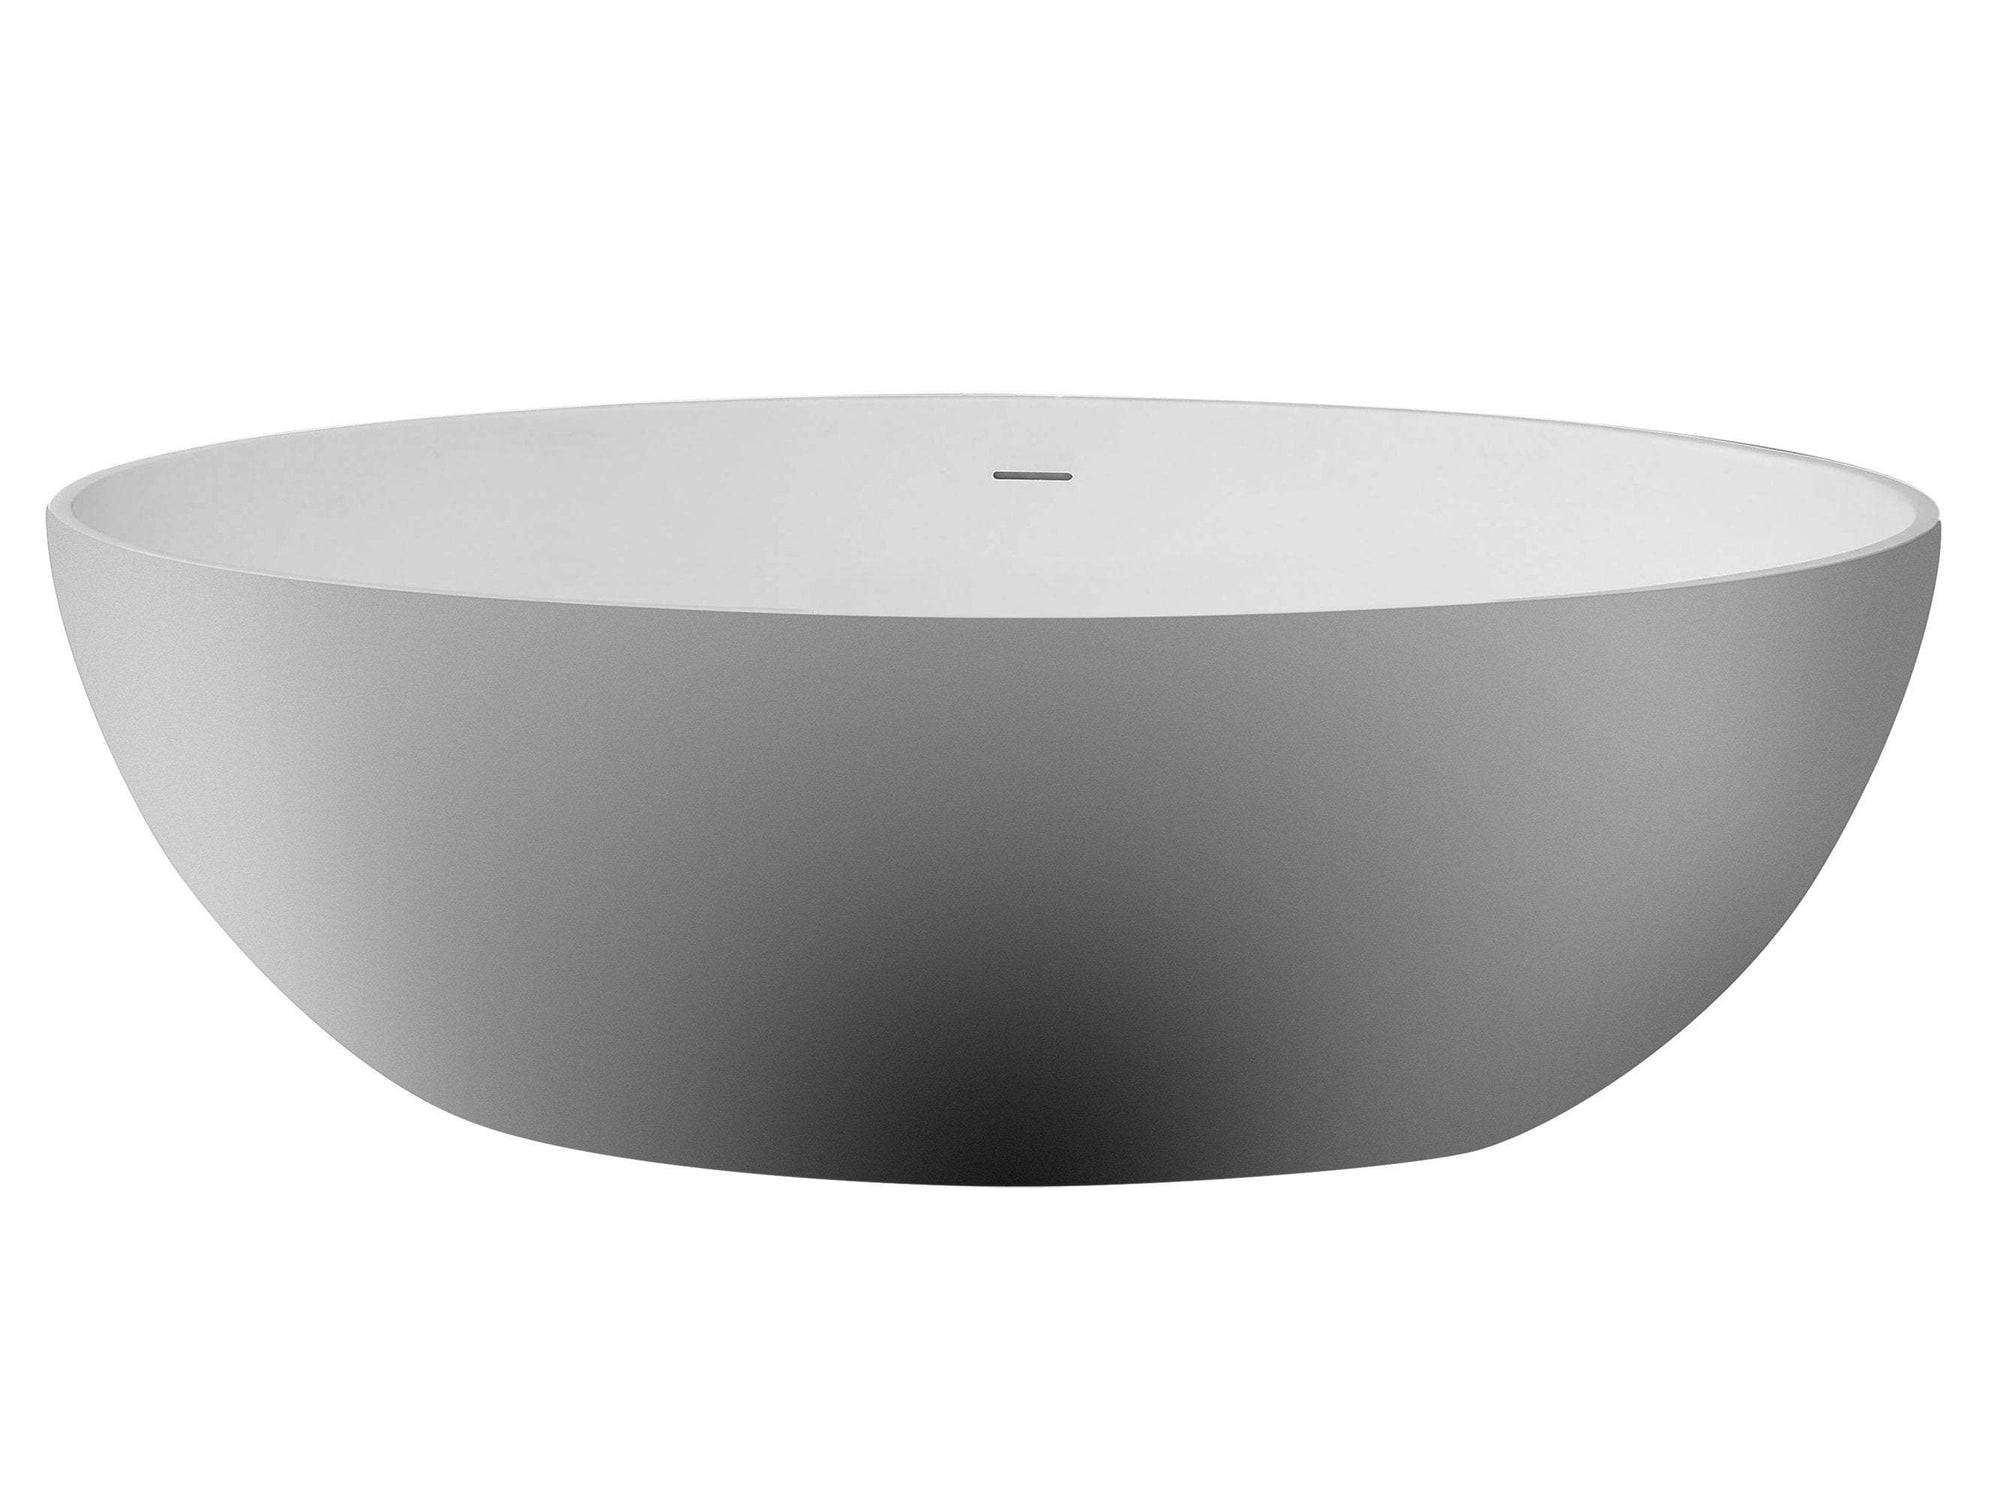 "67"" White Oval Solid Surface Smooth Resin Soaking Bathtub"